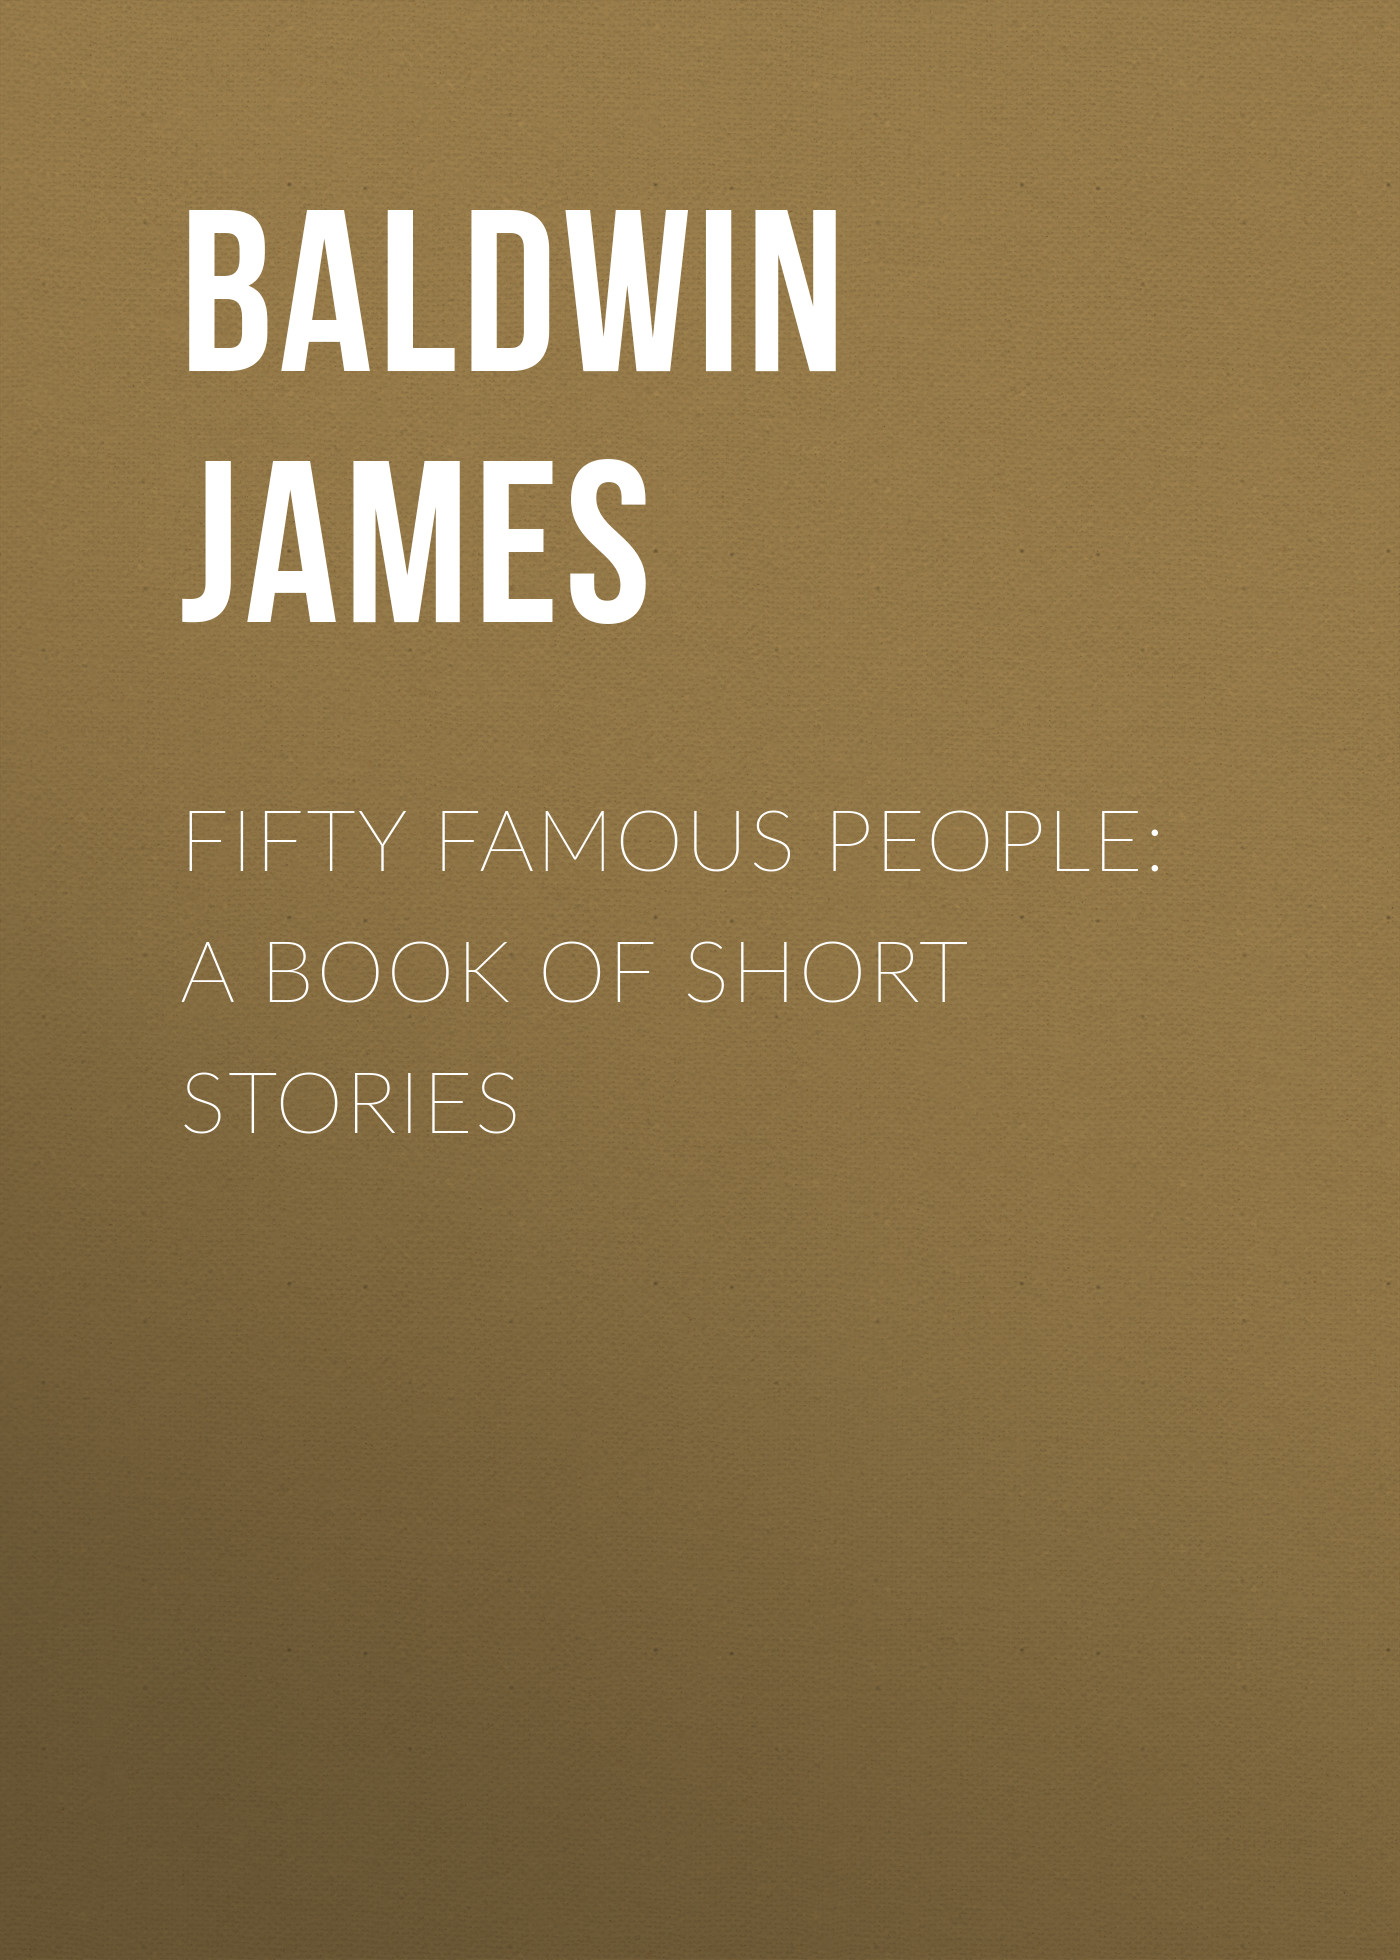 Baldwin James Fifty Famous People: A Book of Short Stories james baldwin school reading by grades first eighth year book 6